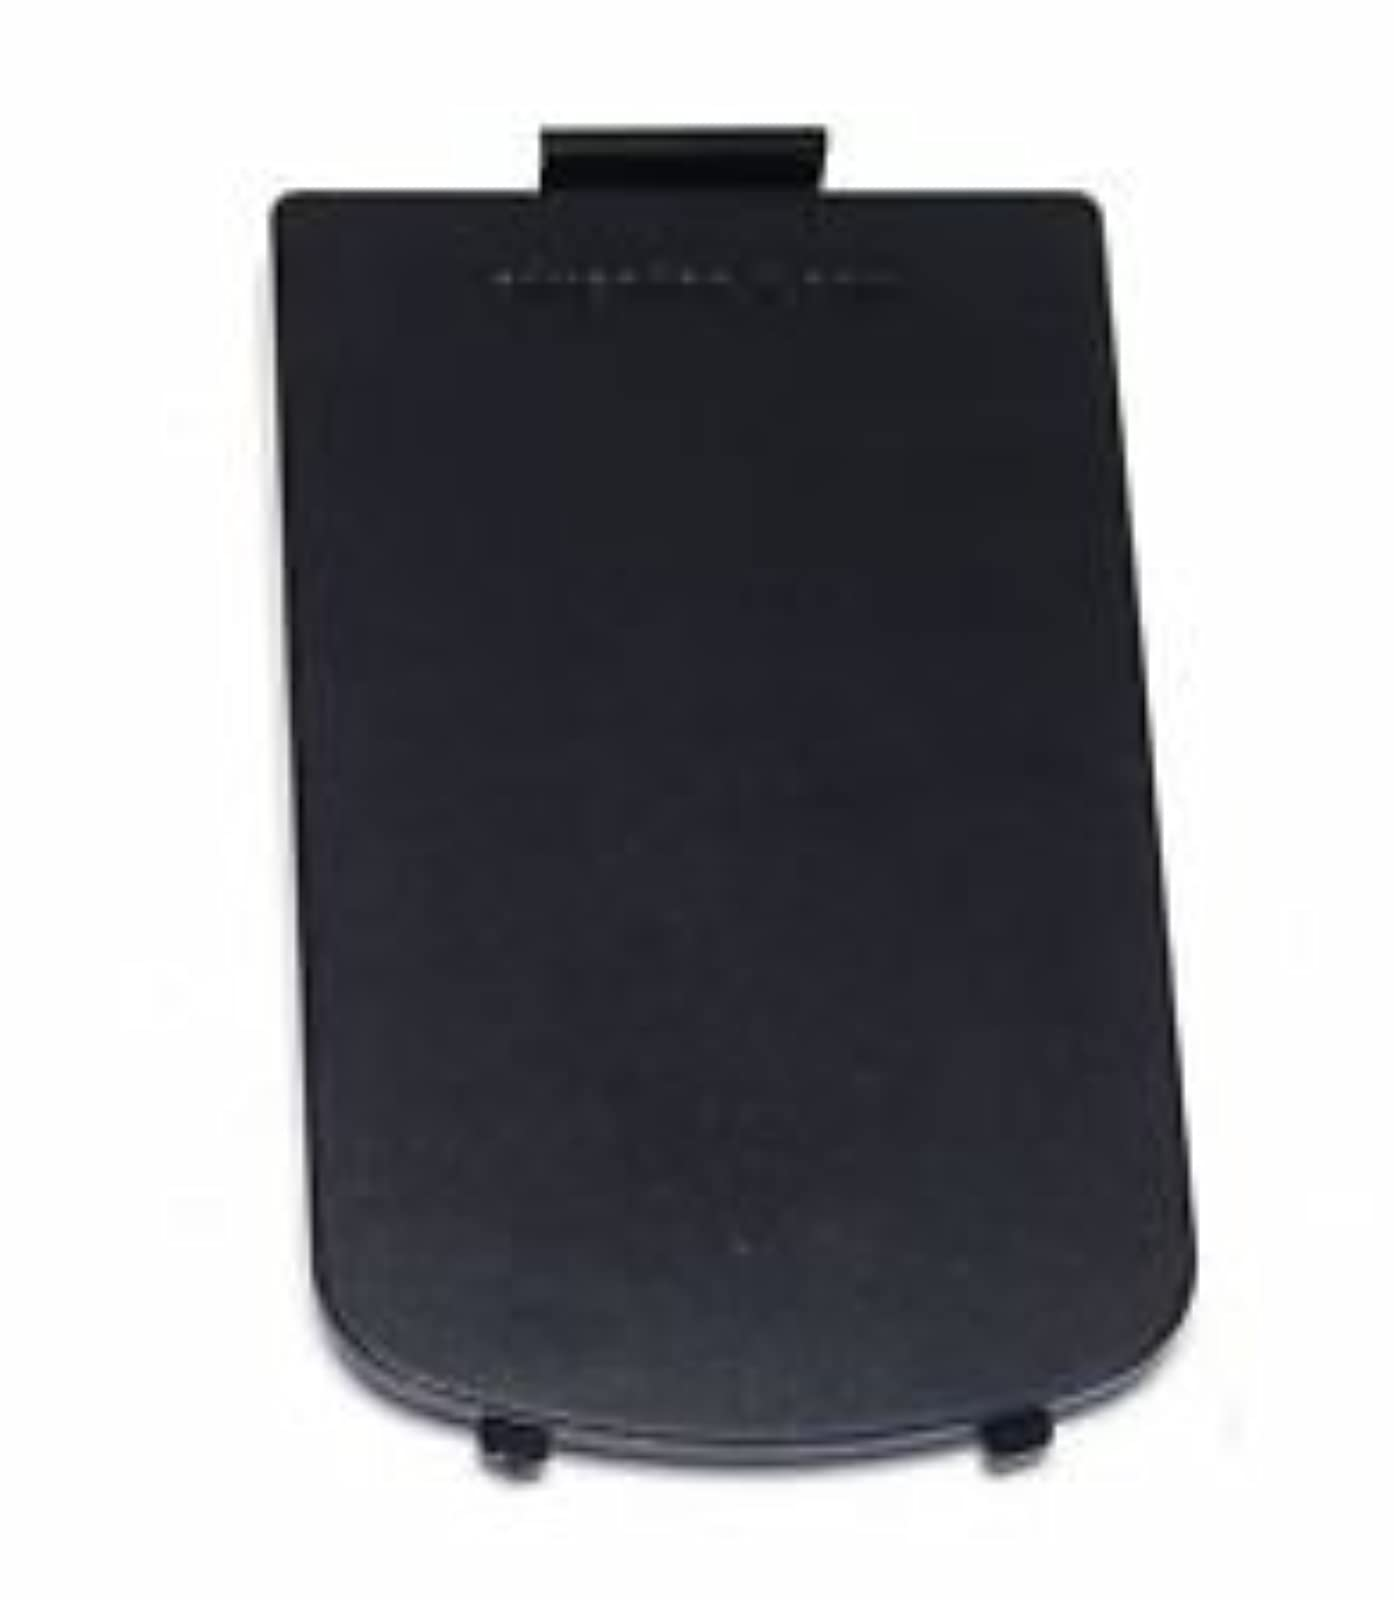 Battery Cover For Texas Instruments Ti 84 Plus